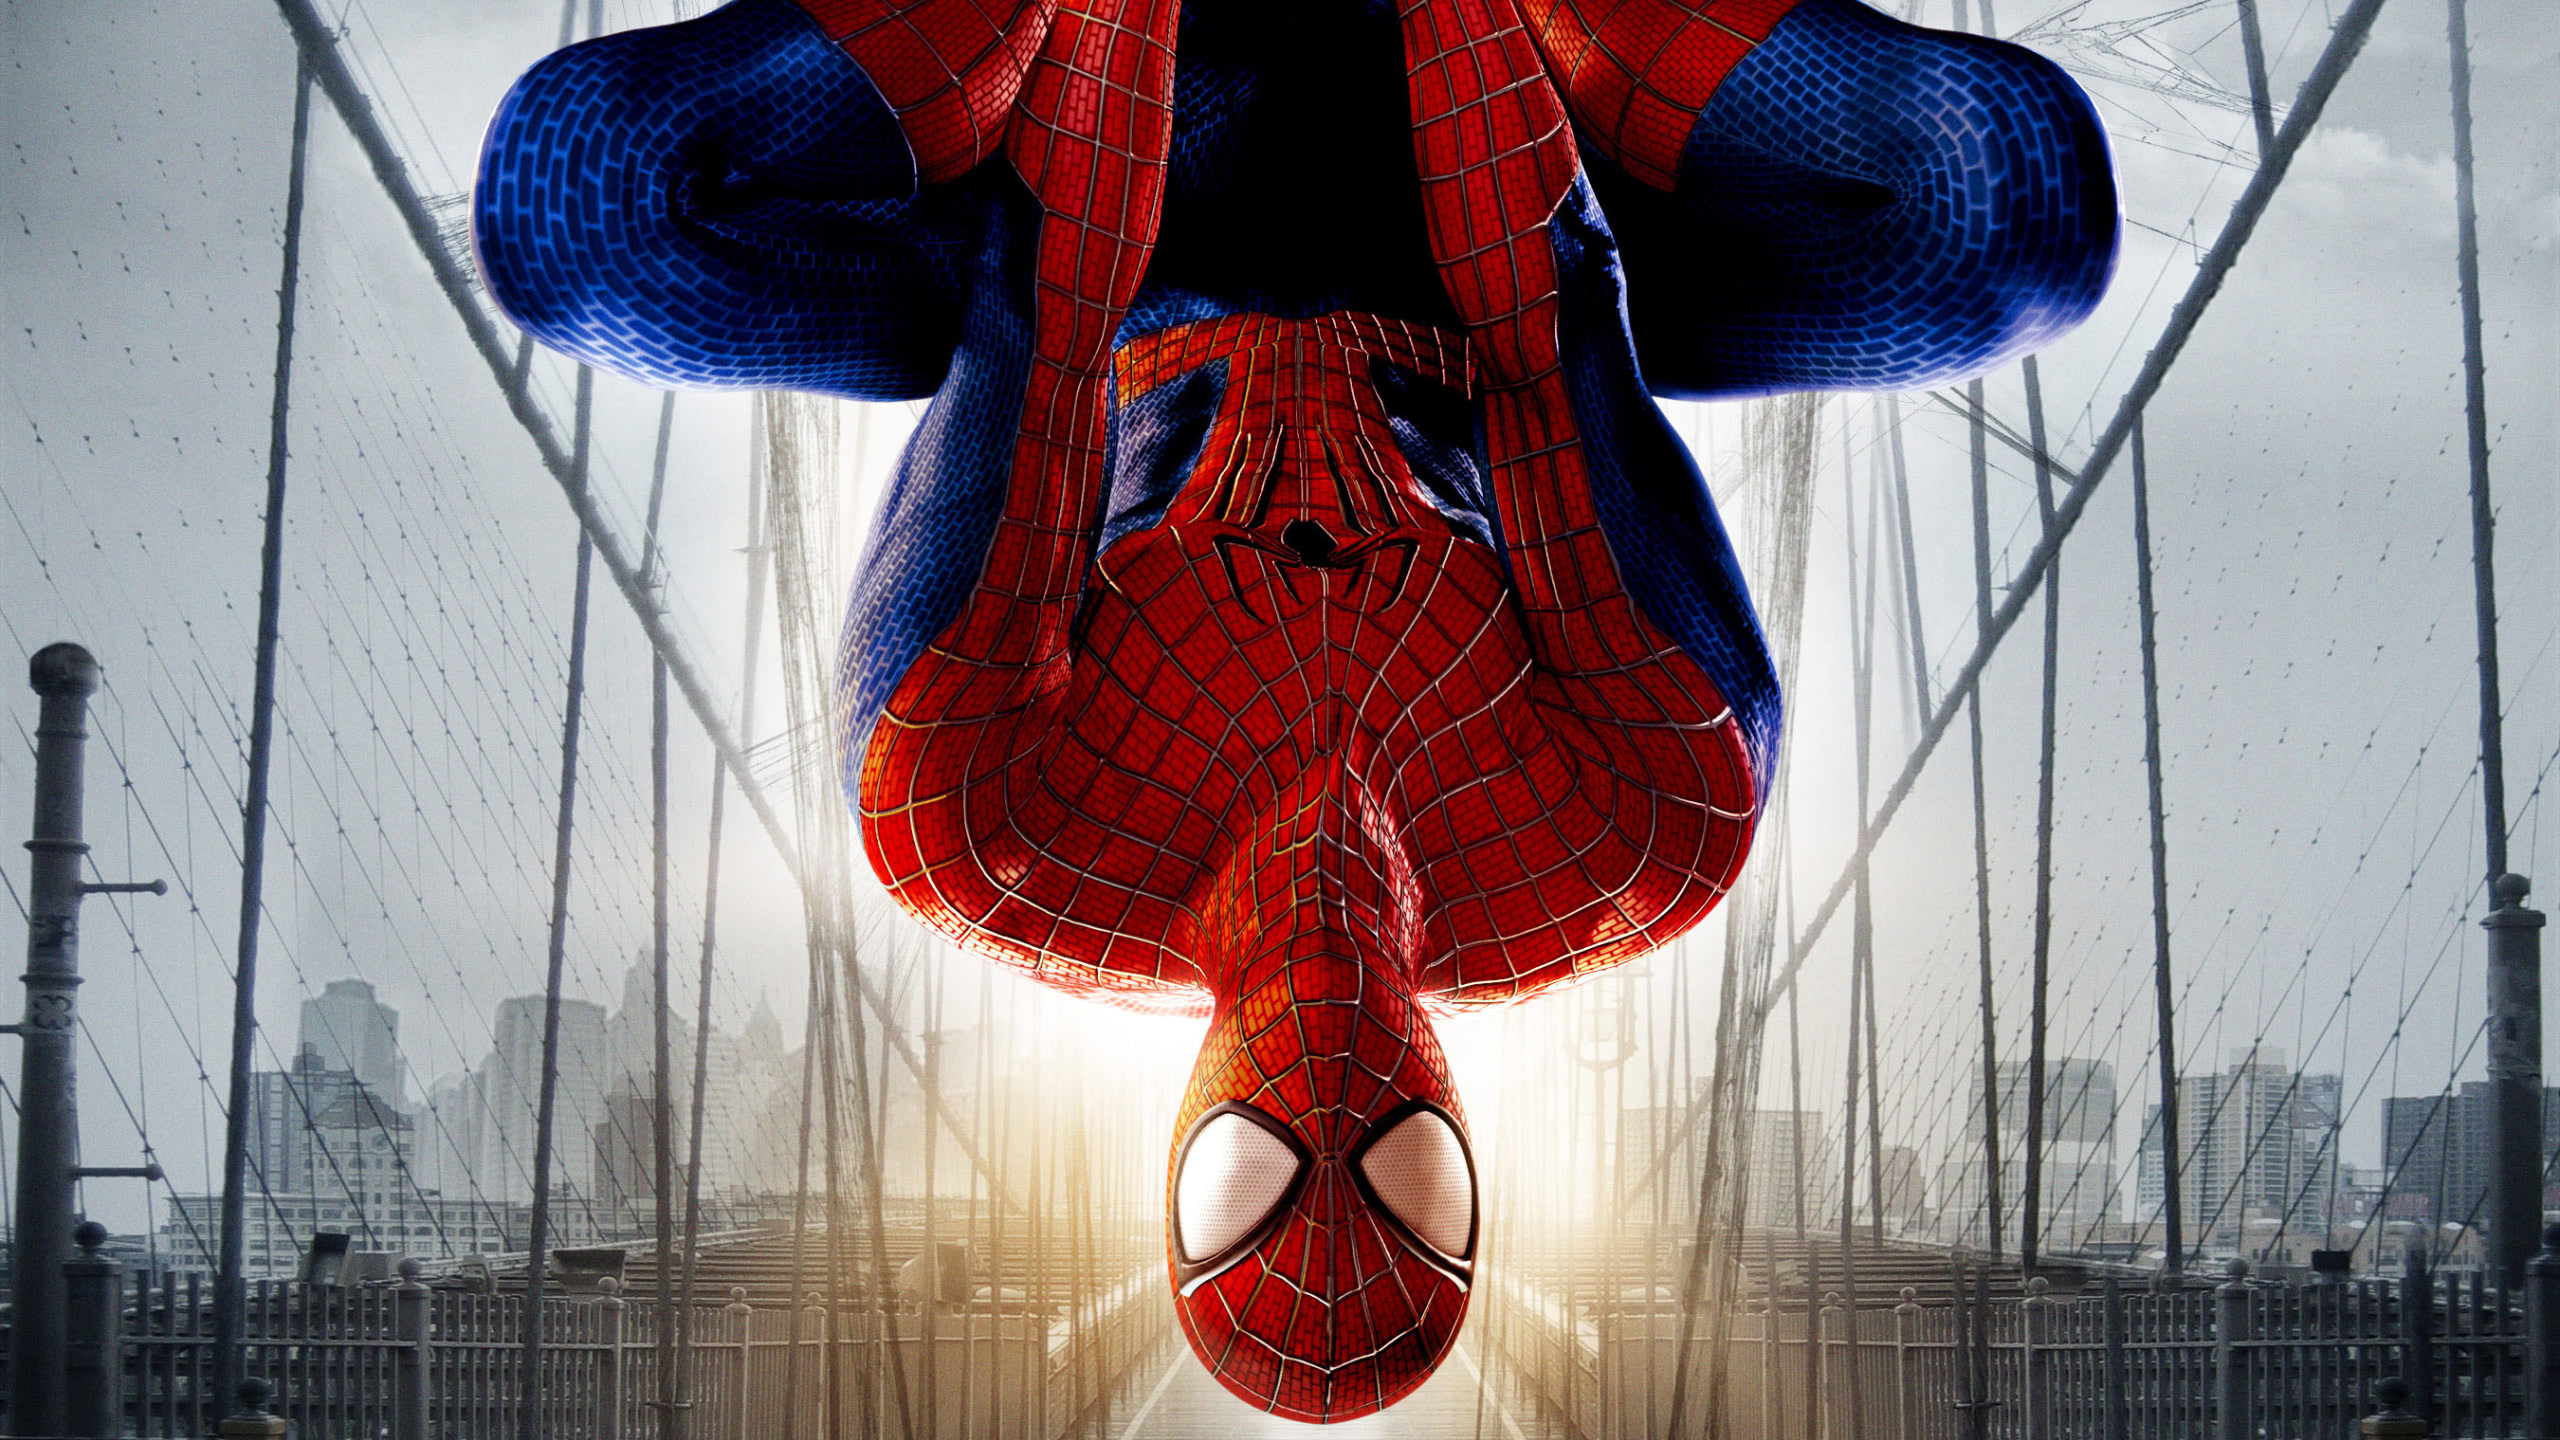 The Amazing Spider Man 2 Wqhd 1440p Wallpaper Pixelz